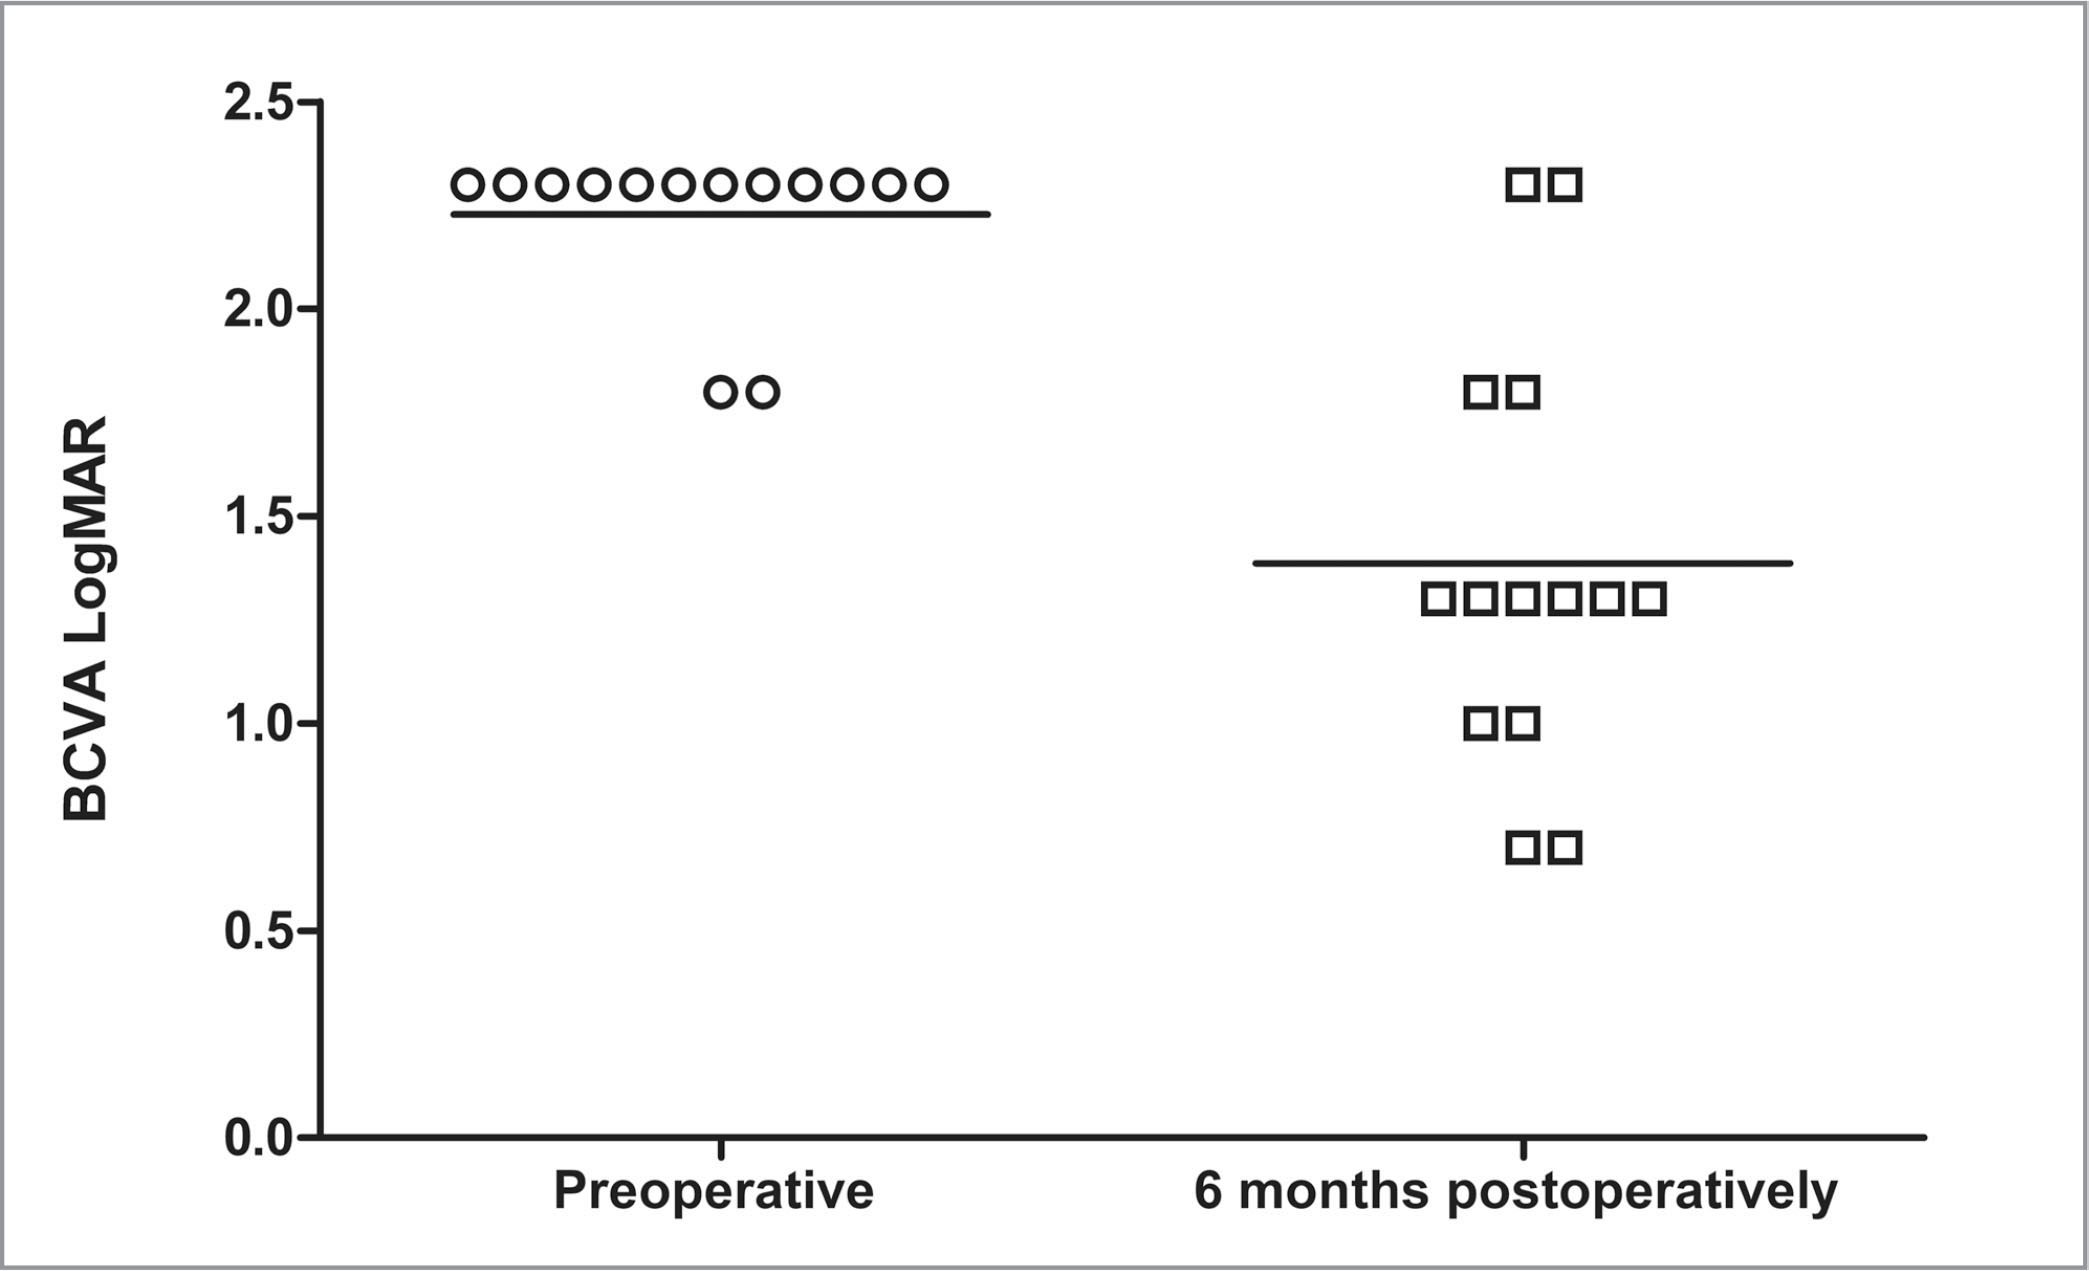 Scatterplot showing the best-corrected visual acuity (BCVA) in logMAR preoperatively and after 6 months in the 14 patients undergoing amniotic membrane graft for repair of myopic macular hole-associated retinal detachment.